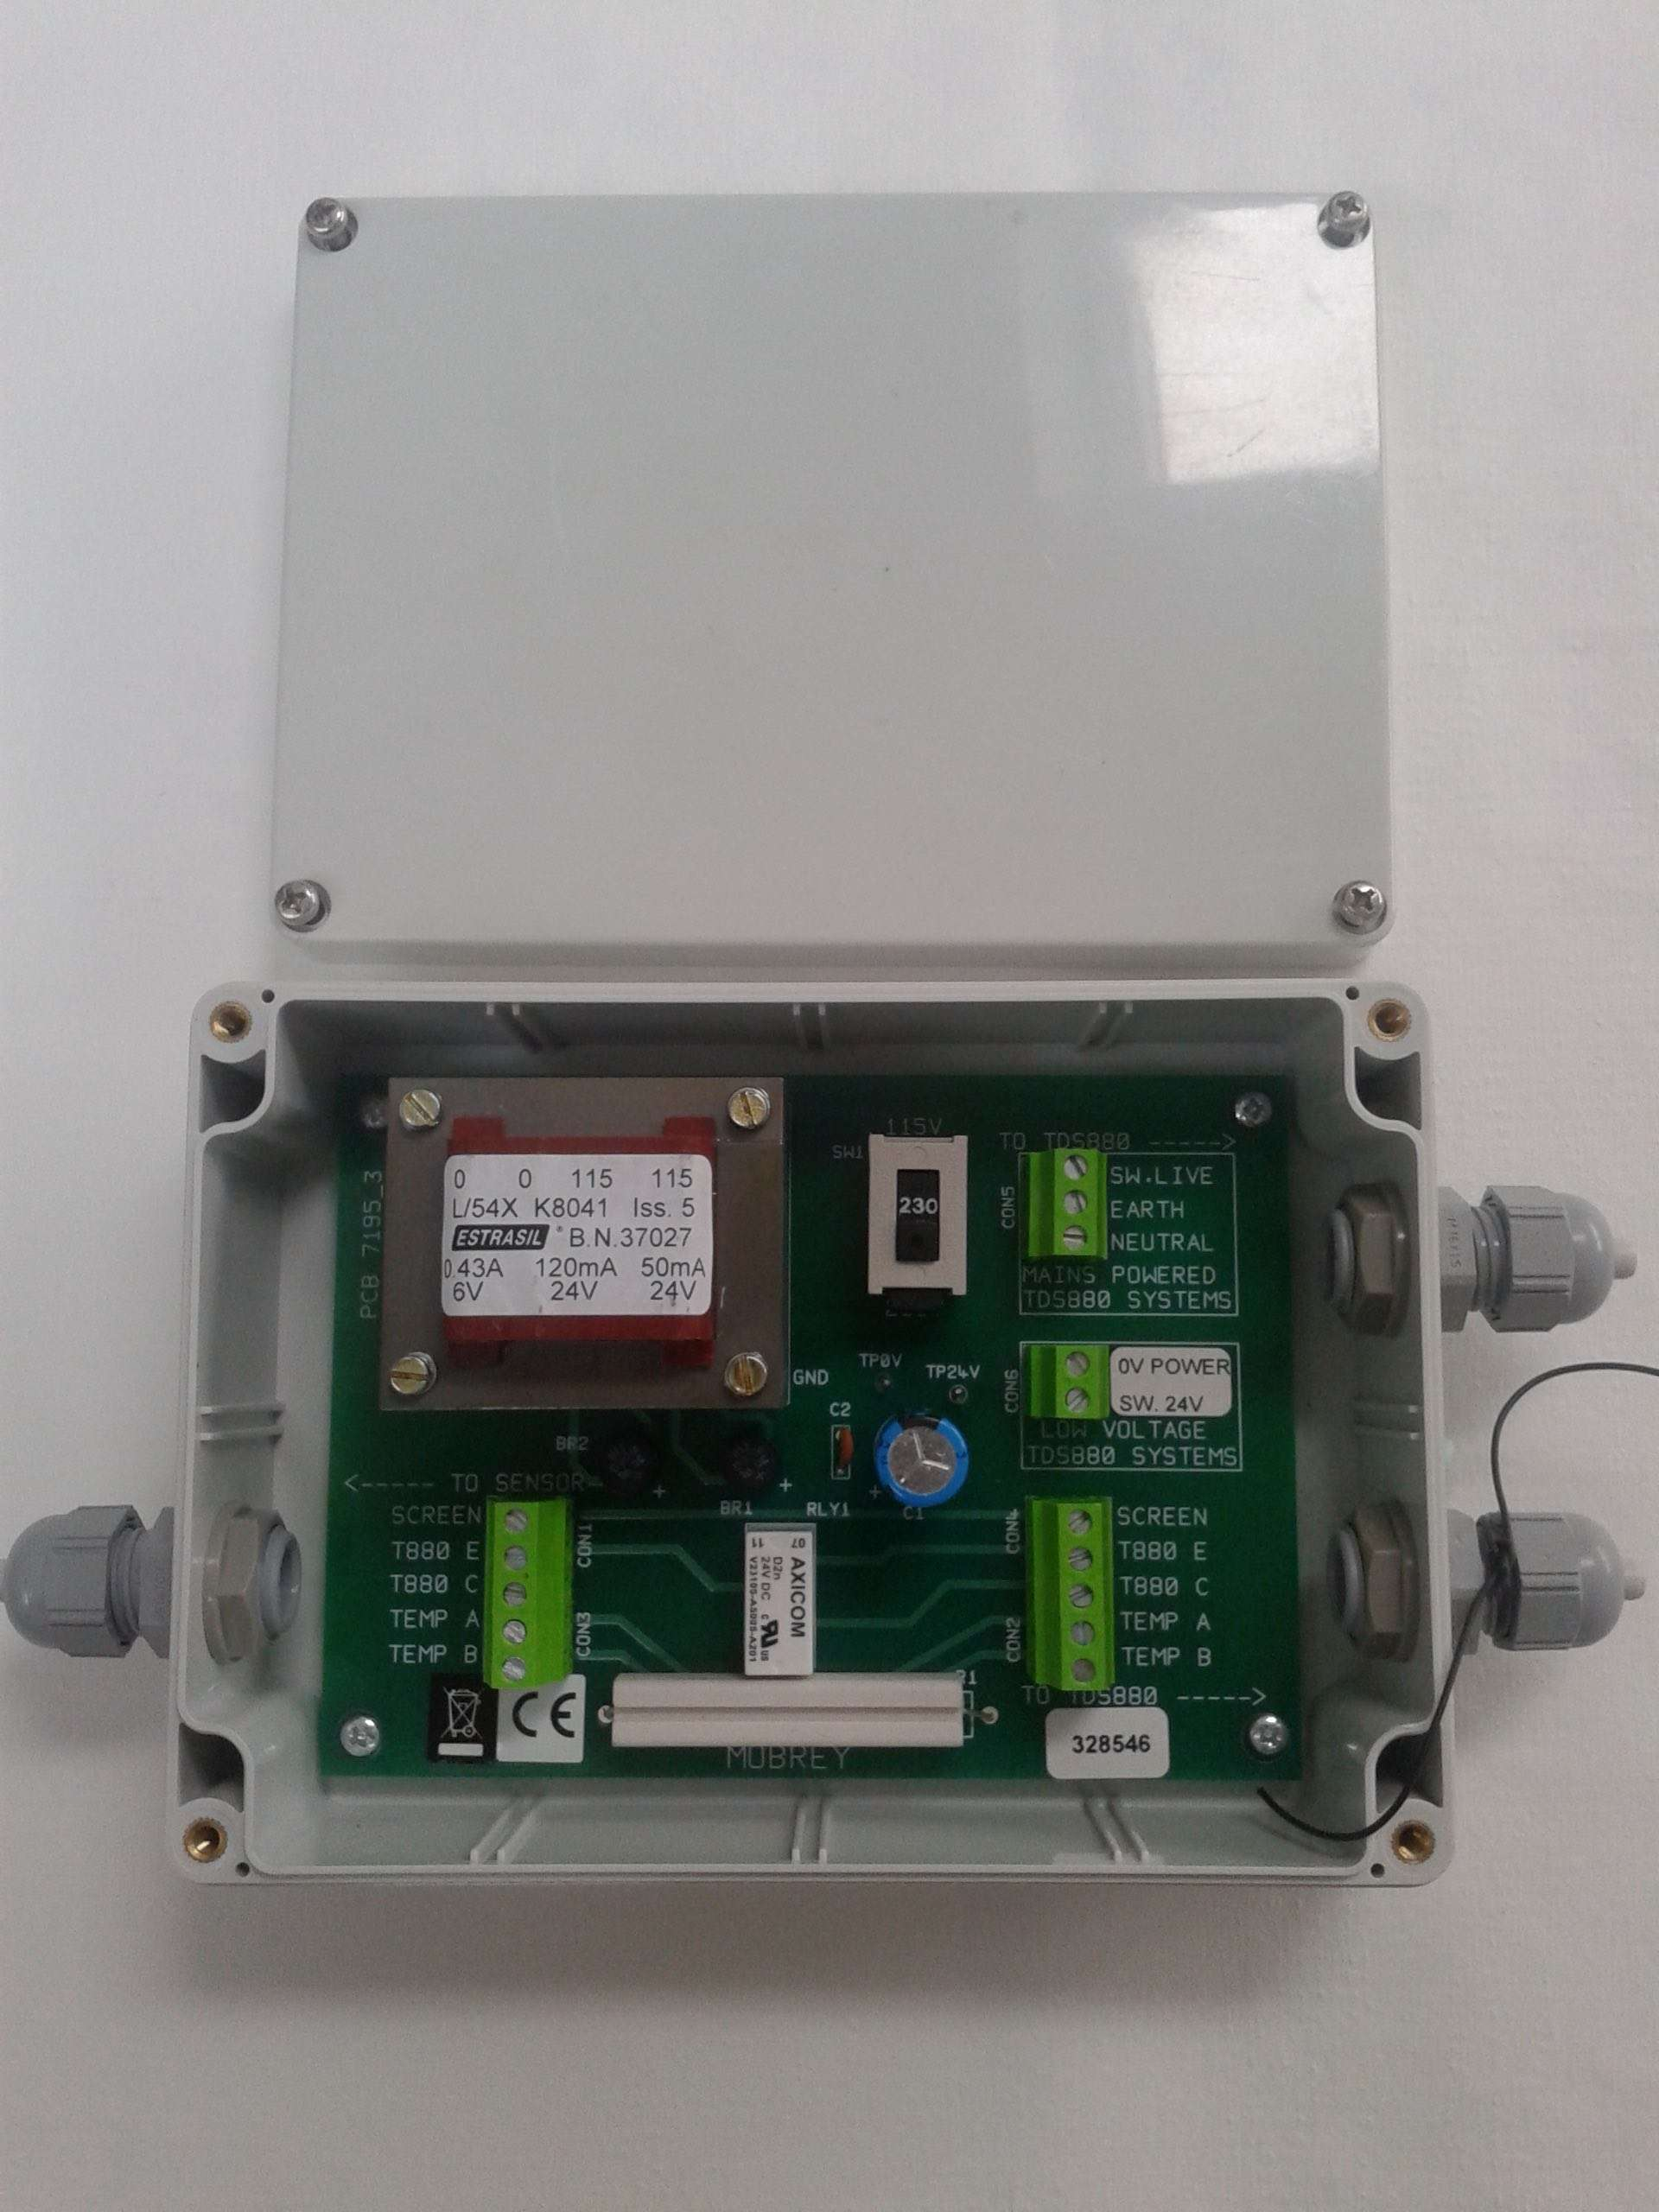 Mobrey PDS880 Sensor Interface Module